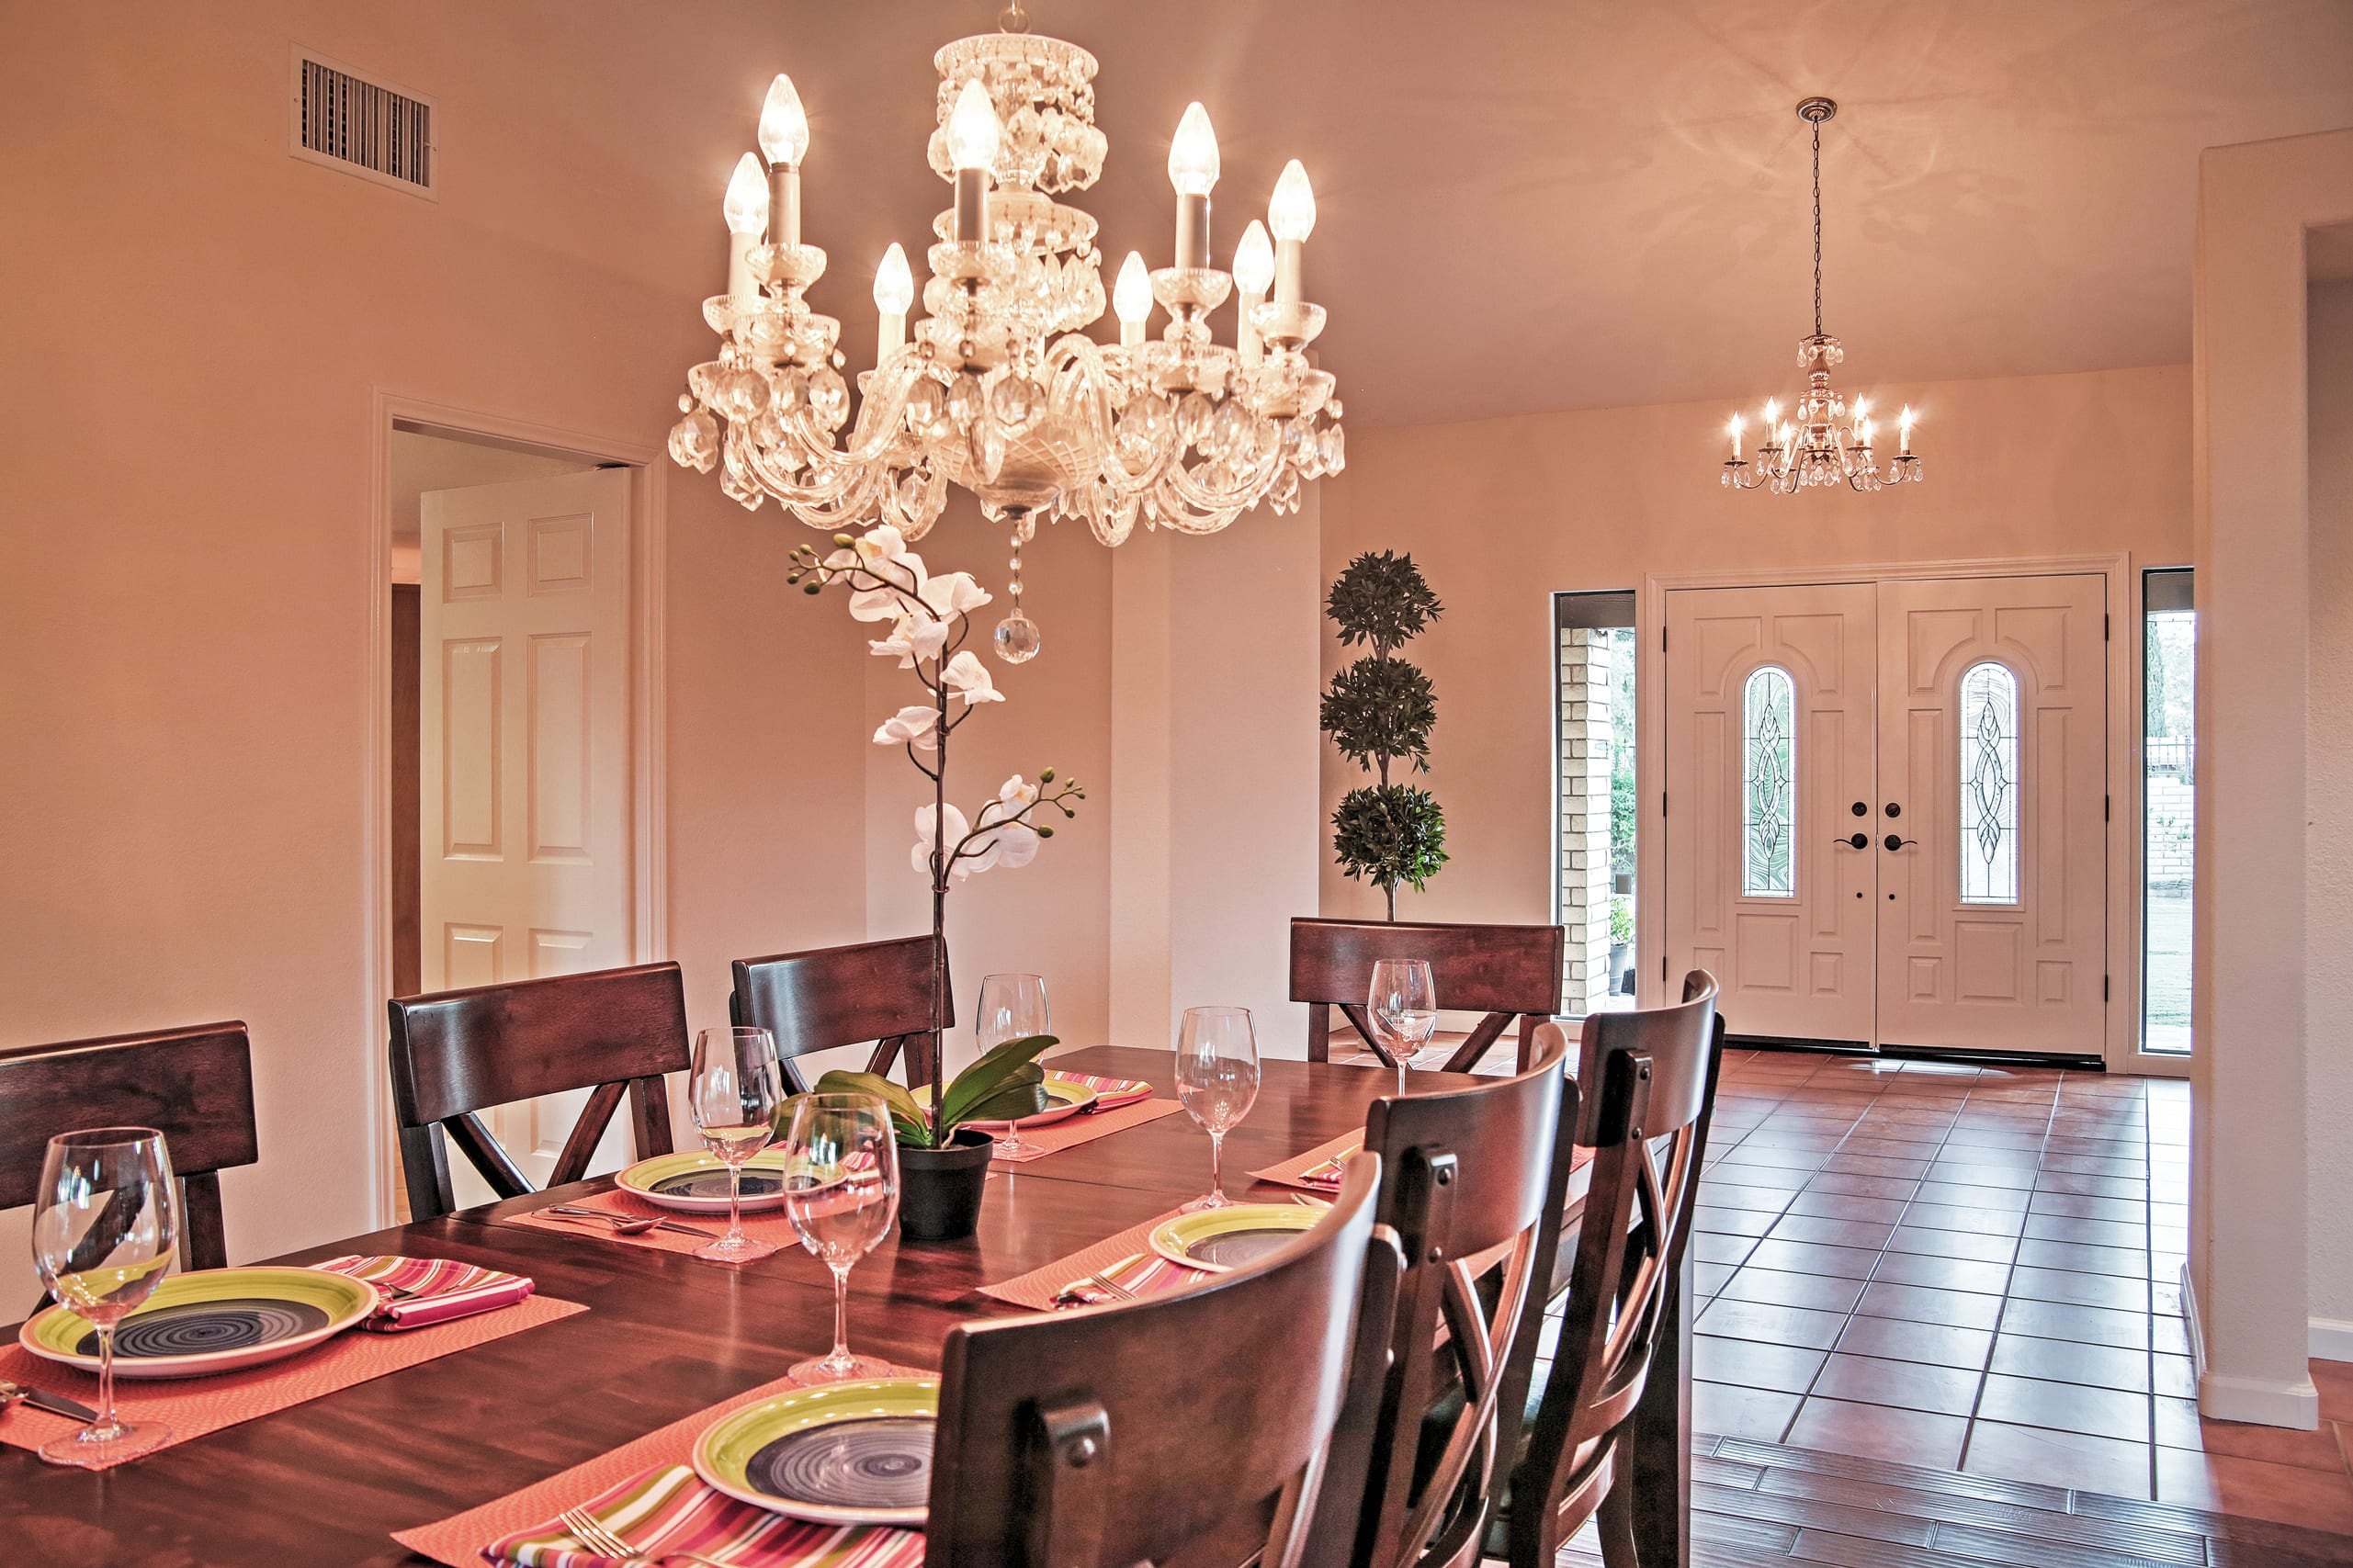 Enjoy delicious meals at this elegant dining table.